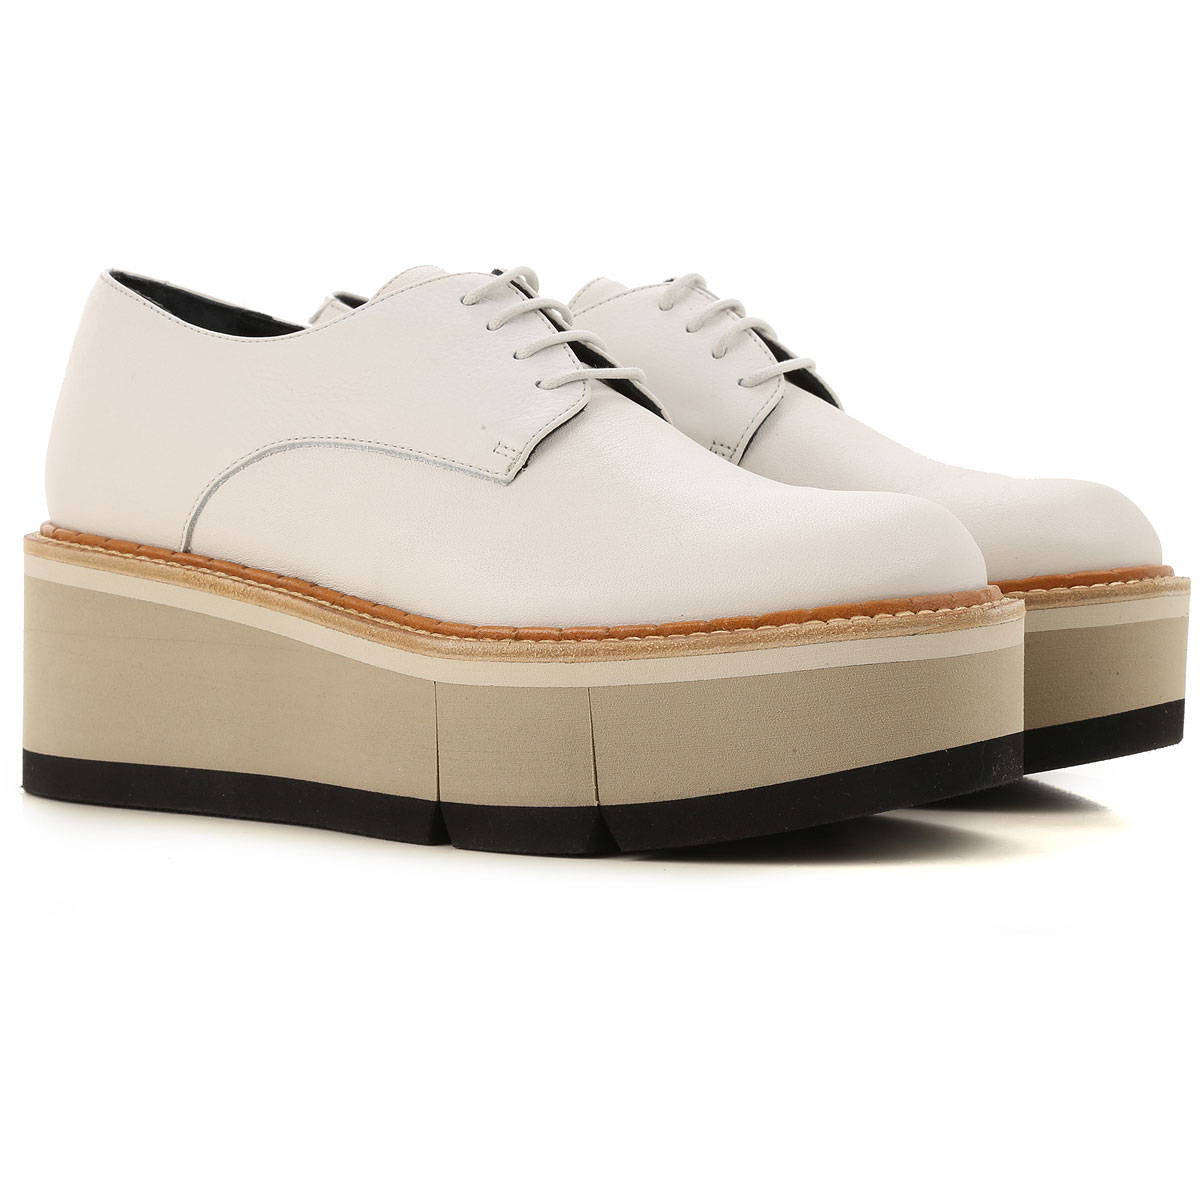 Paloma Barcelo Lace Up Shoes for Men Oxfords, Derbies and Brogues On Sale, Chalk, Leather, 2019, 10 5 7 8 9